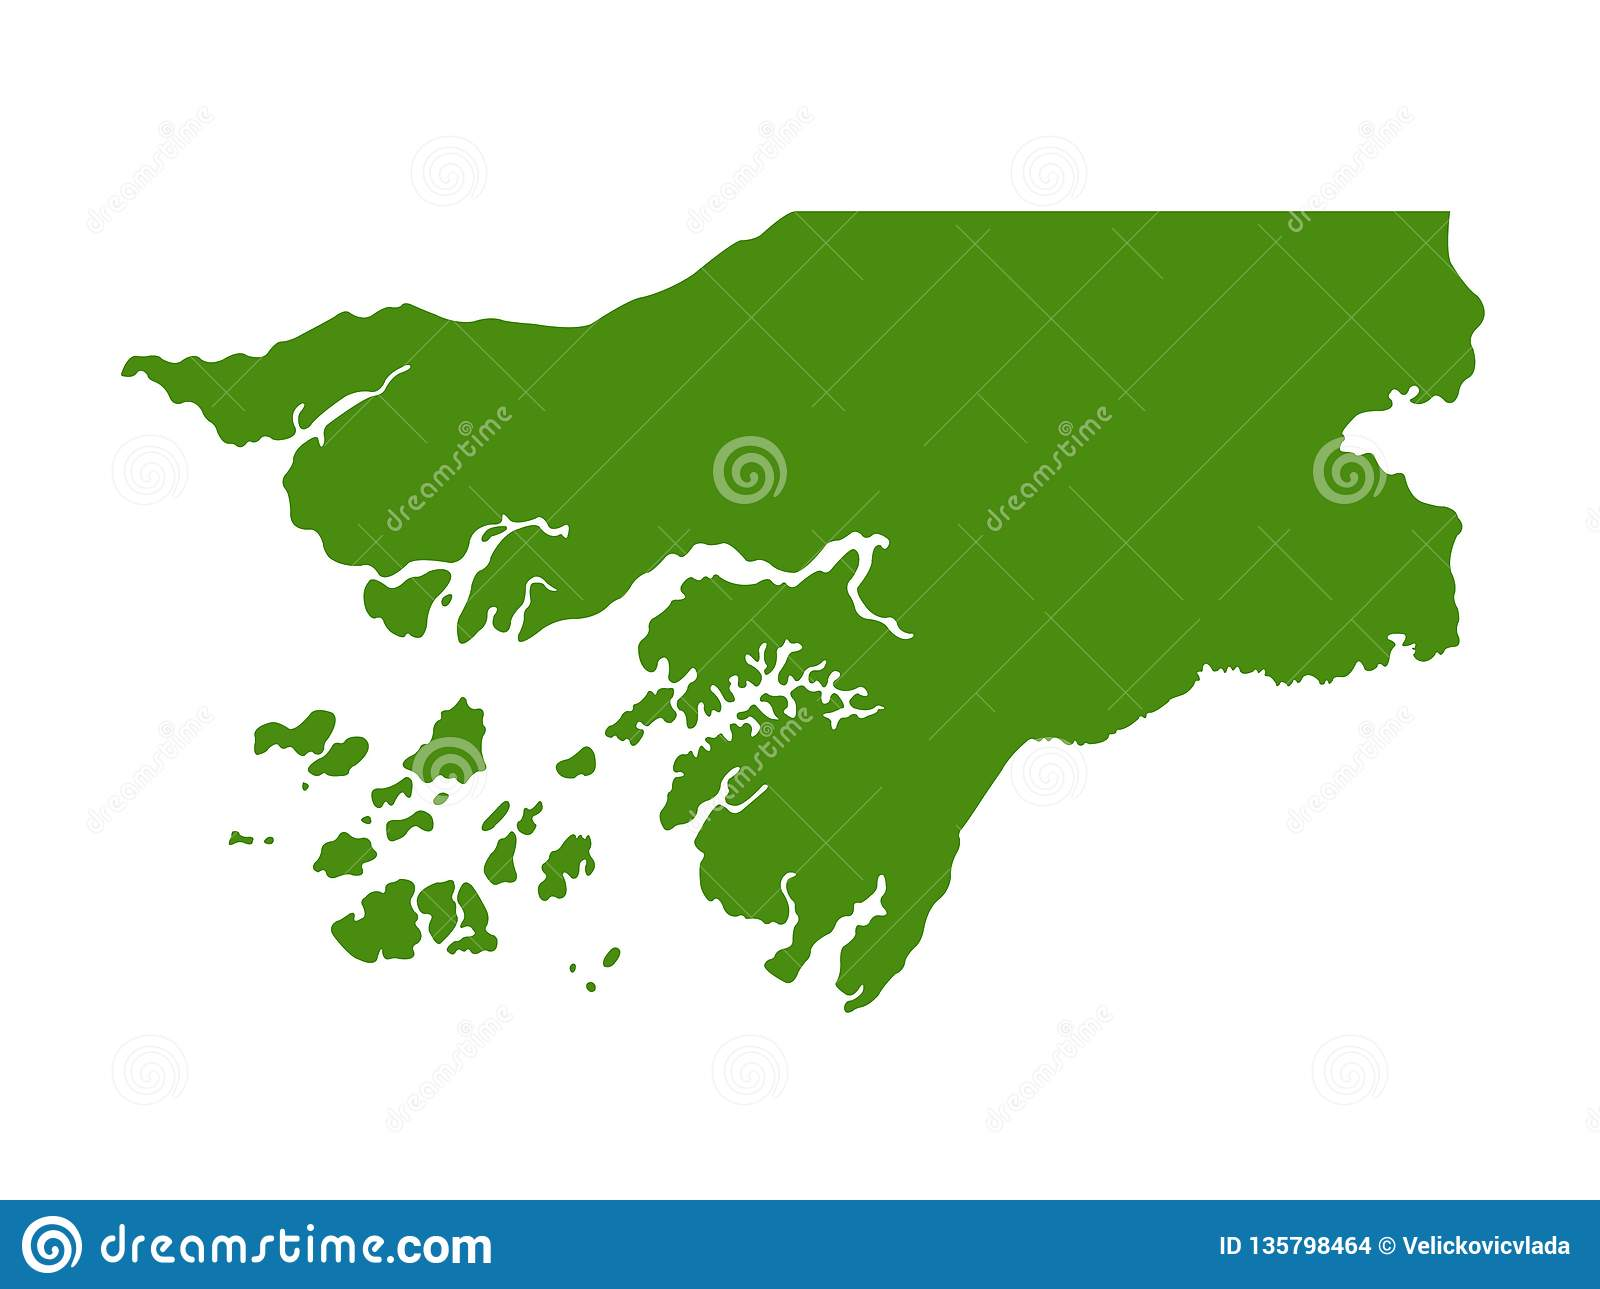 Gambia On Africa Map.Gambia Map Republic Of The Gambia Stock Vector Illustration Of